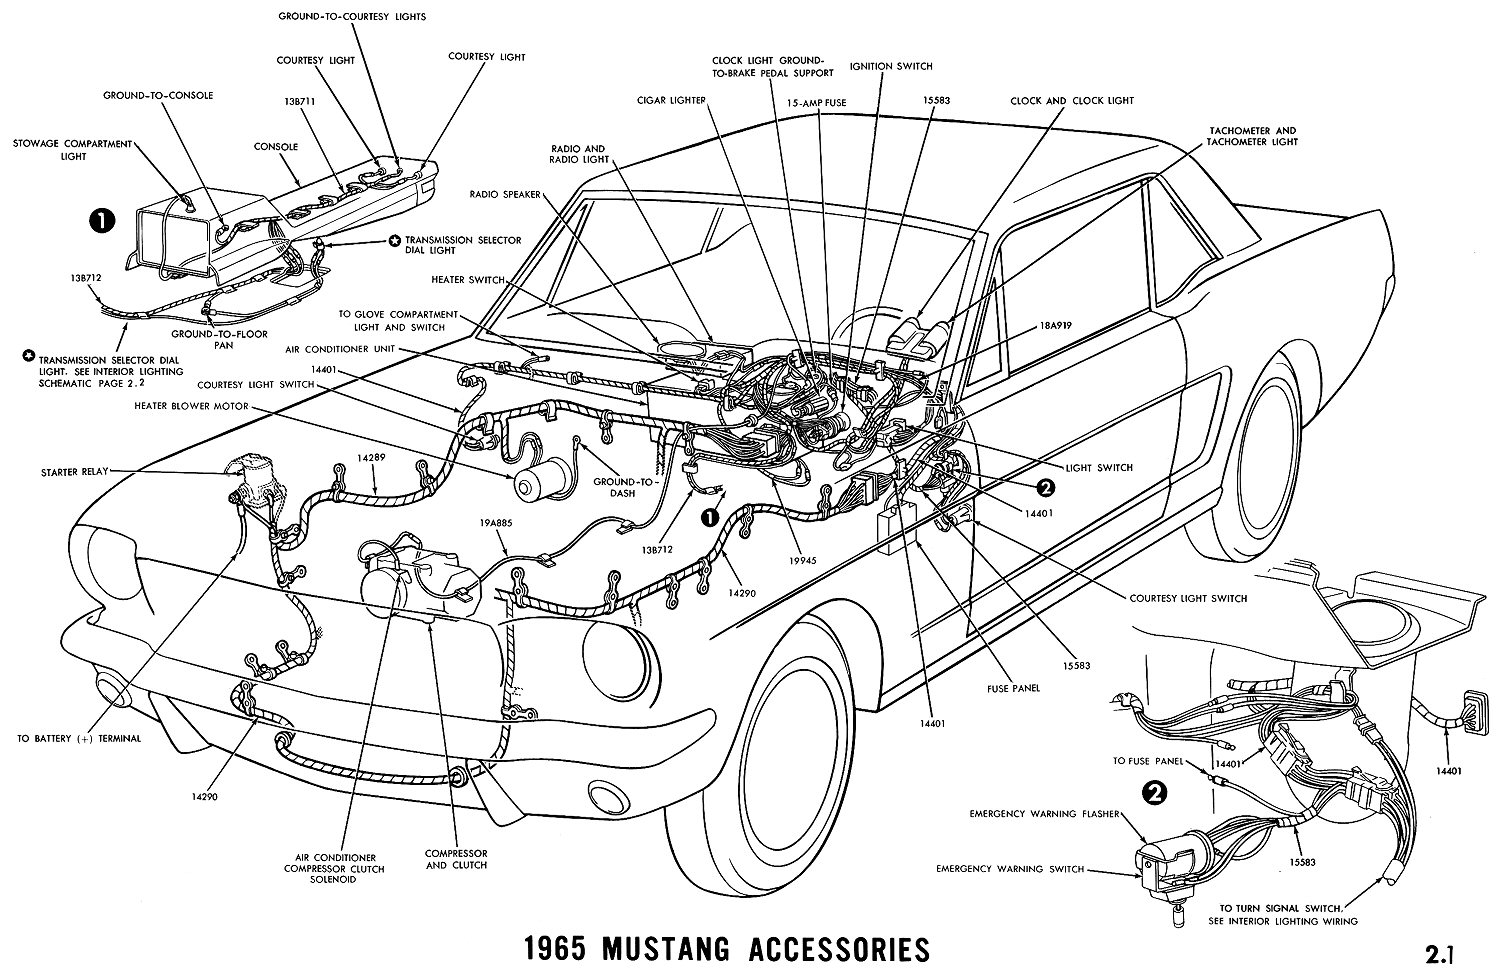 65 mustang accesories 1965 mustang accesories diagram 68 mustang fuse box diagram at bakdesigns.co